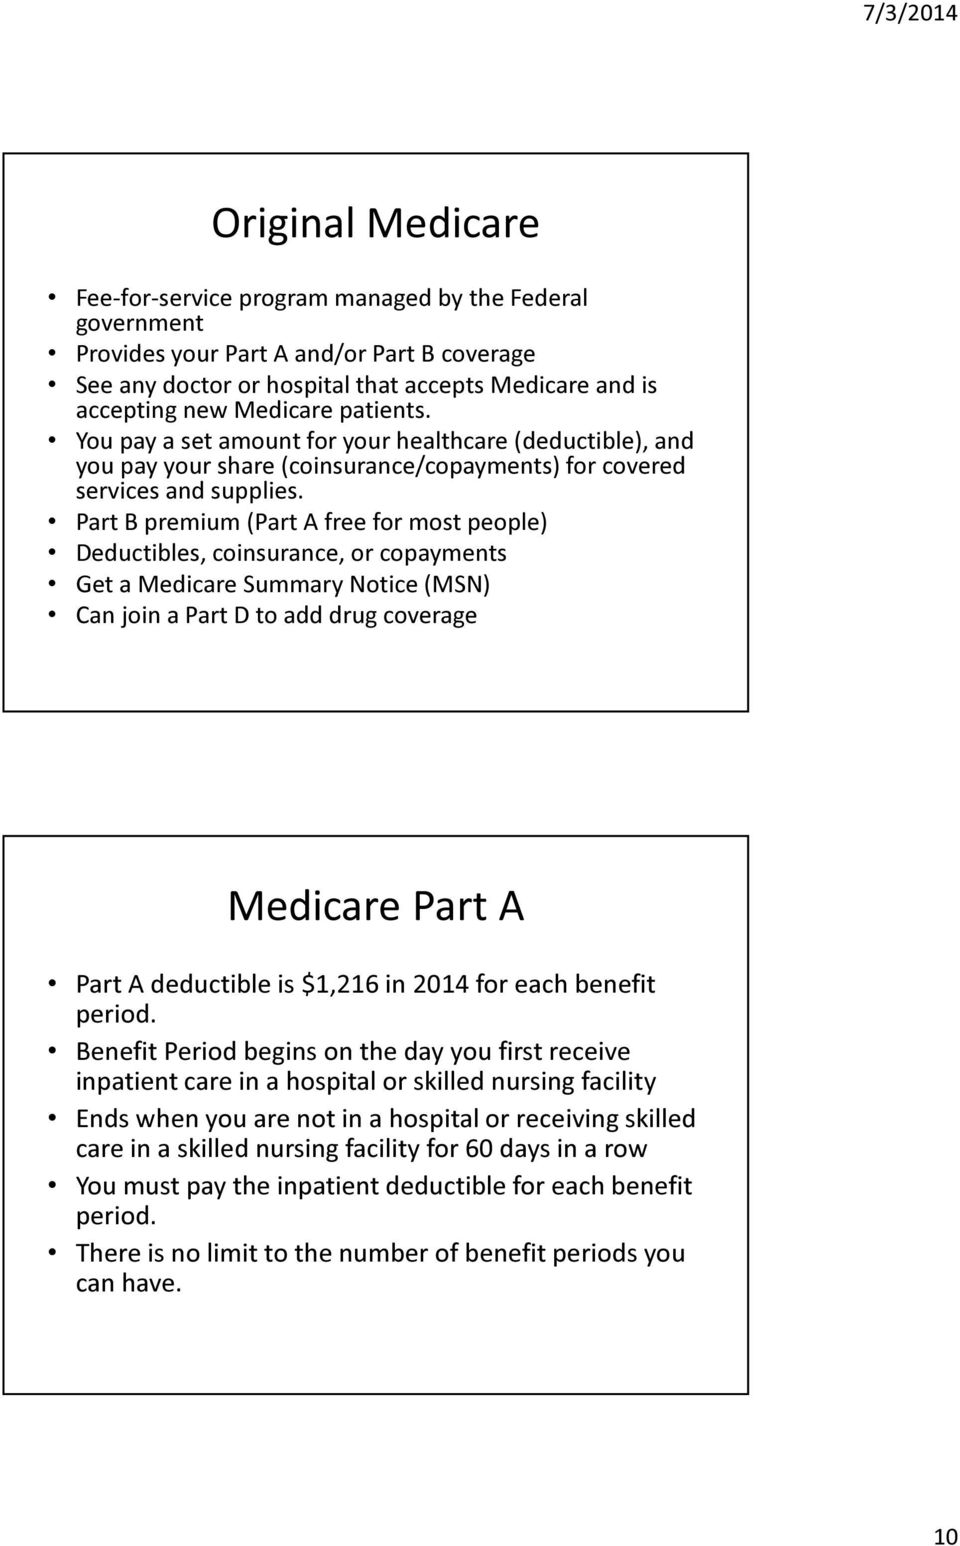 Part B premium (Part A free for most people) Deductibles, coinsurance, or copayments Get a Medicare Summary Notice (MSN) Can join a Part D to add drug coverage Medicare Part A Part A deductible is